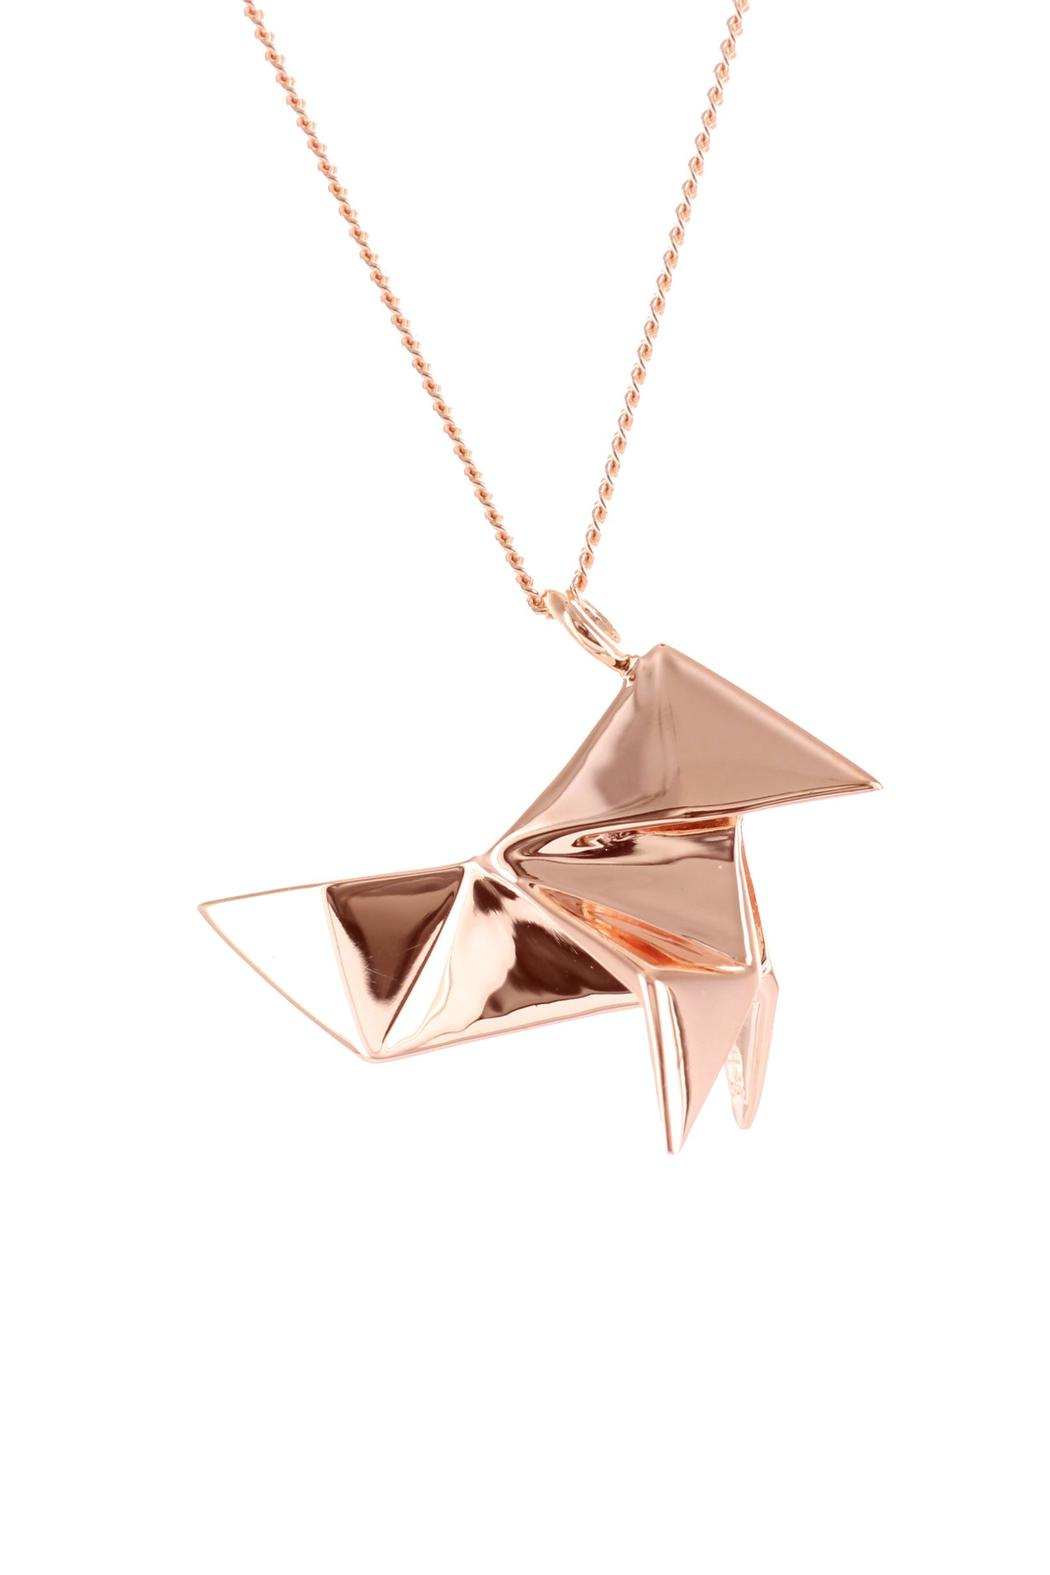 Origami Jewellery Necklace Cuckoo Silver from Paris by ... - photo#23